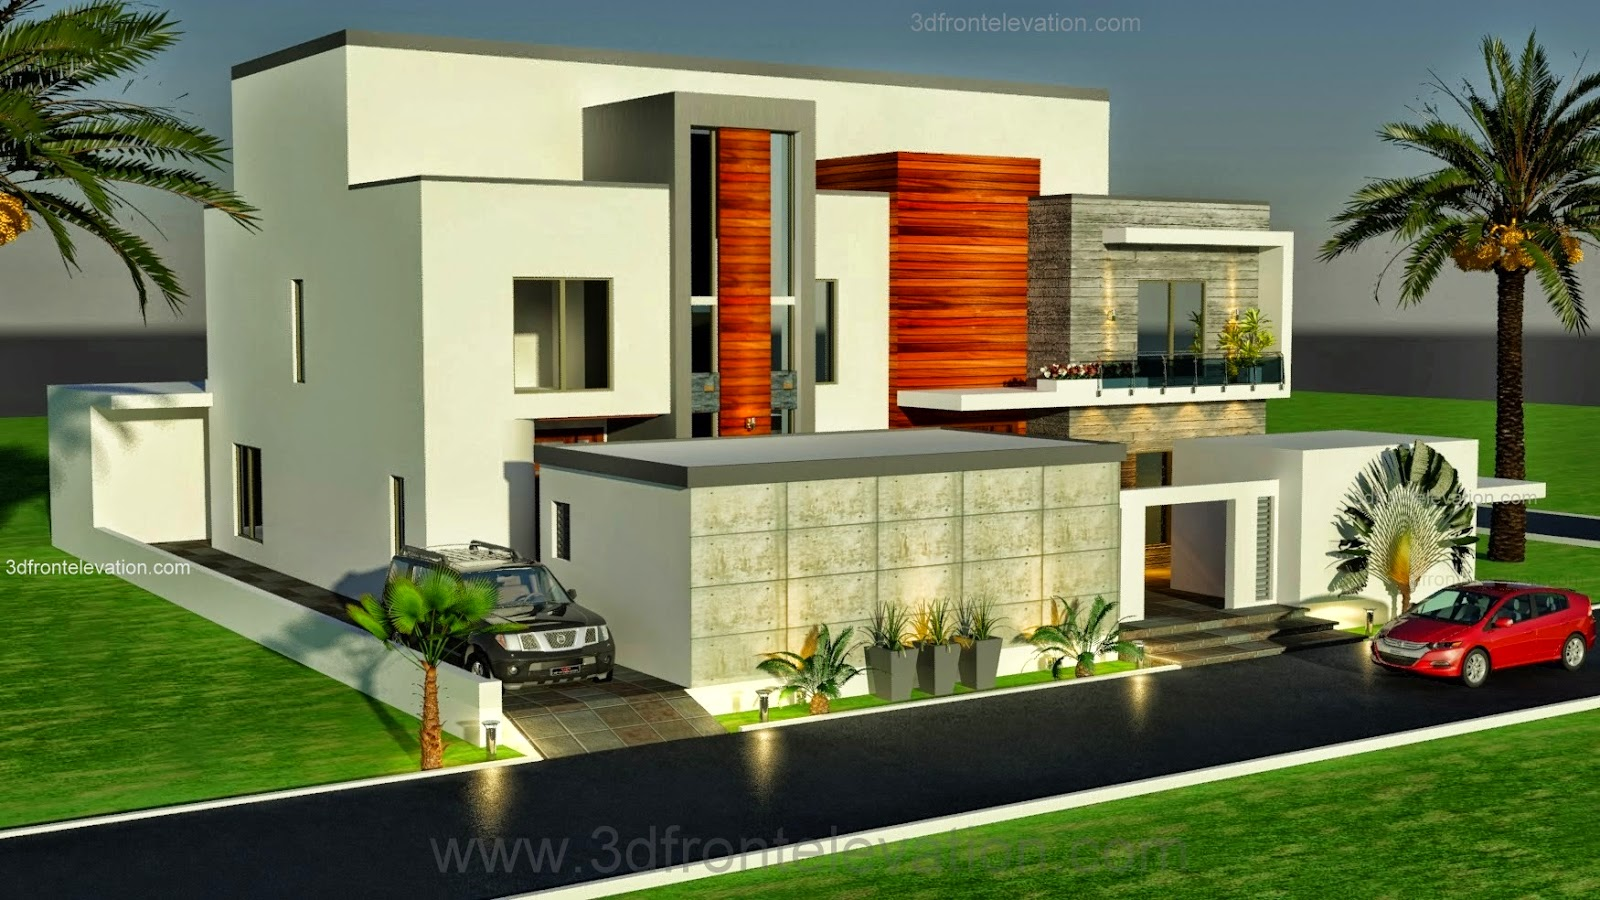 Front Elevation House Dubai : D front elevation dubai arabian modern contemporary